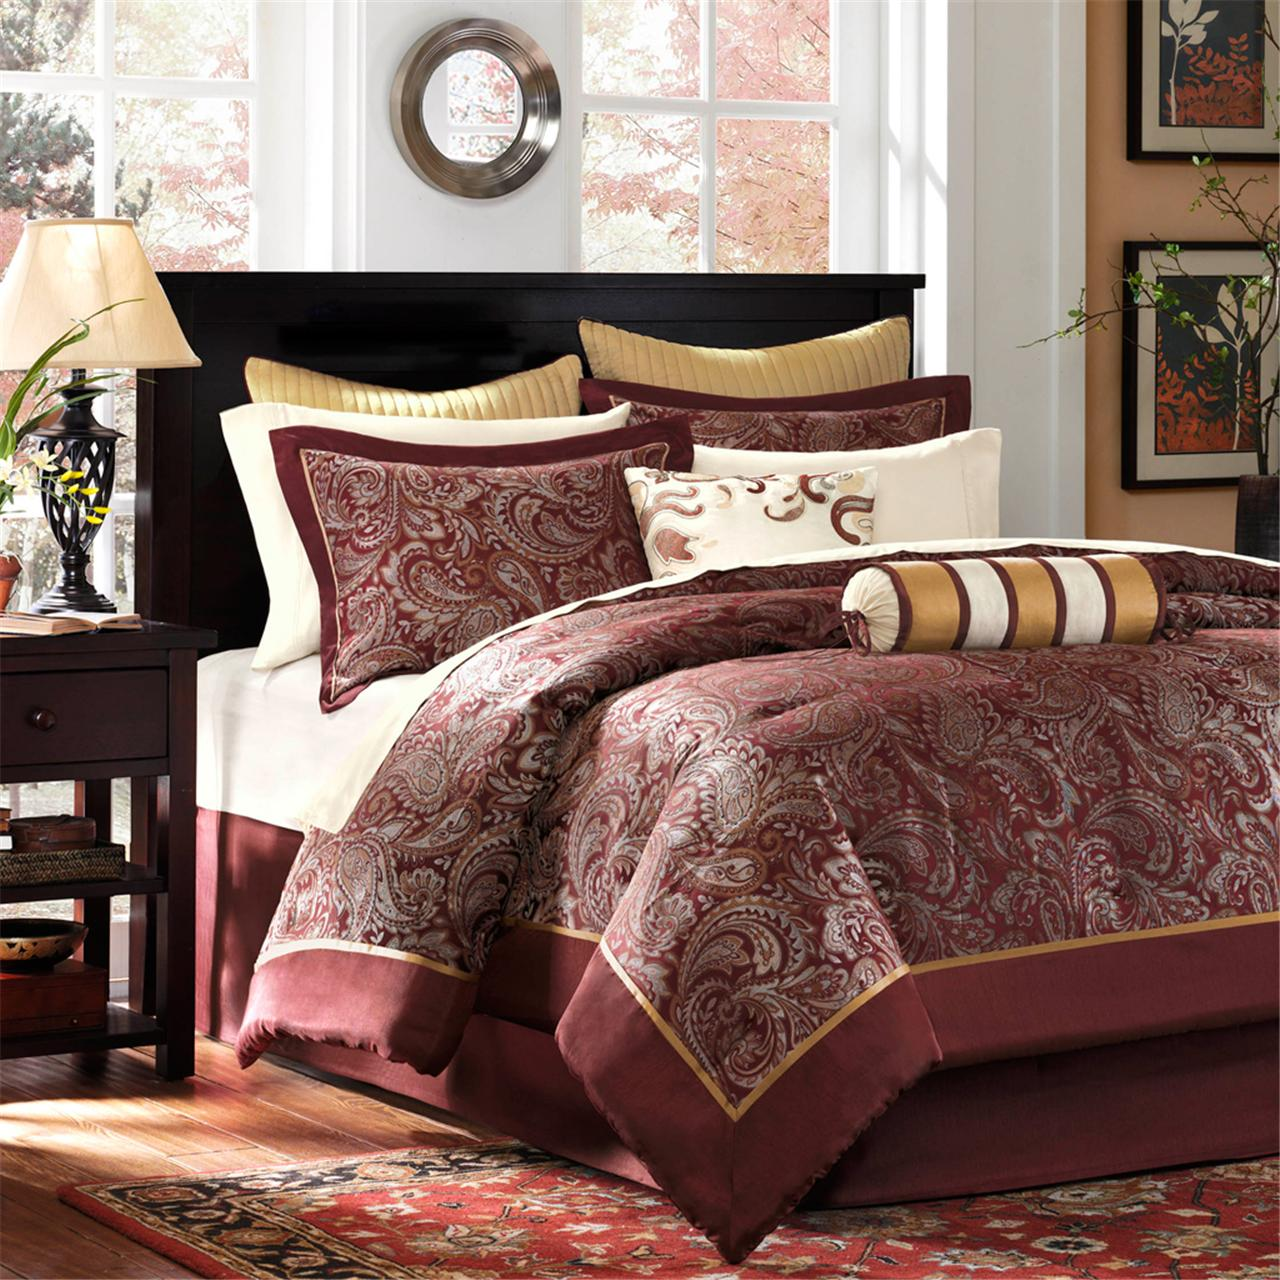 comforter marcella set cotton sets bed madison park piece indigo product printed bath bedding